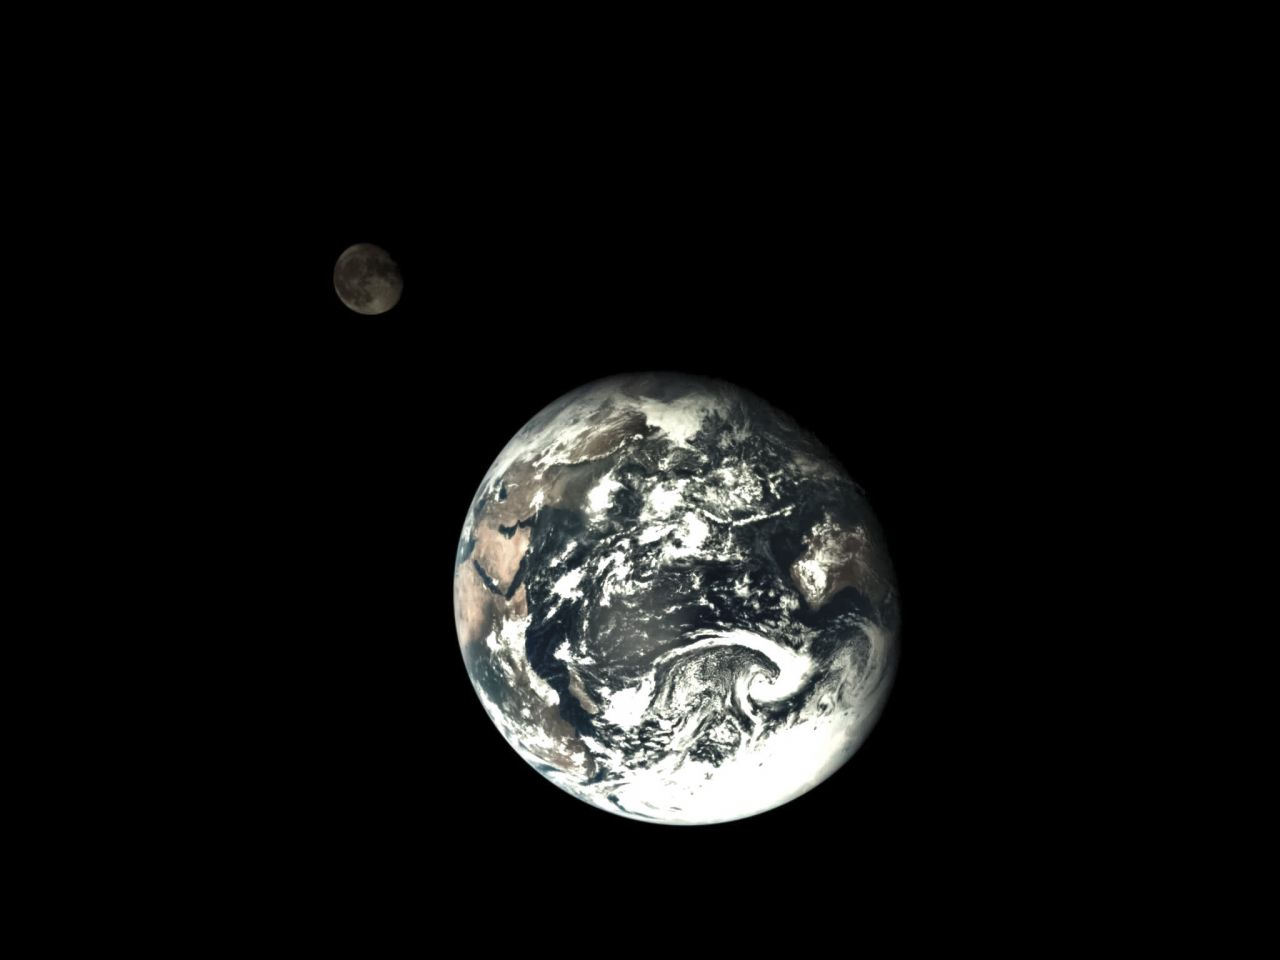 A shot of the Earth and Moon taken by the service module of the Chang'e-5 T1 lunar return mission.